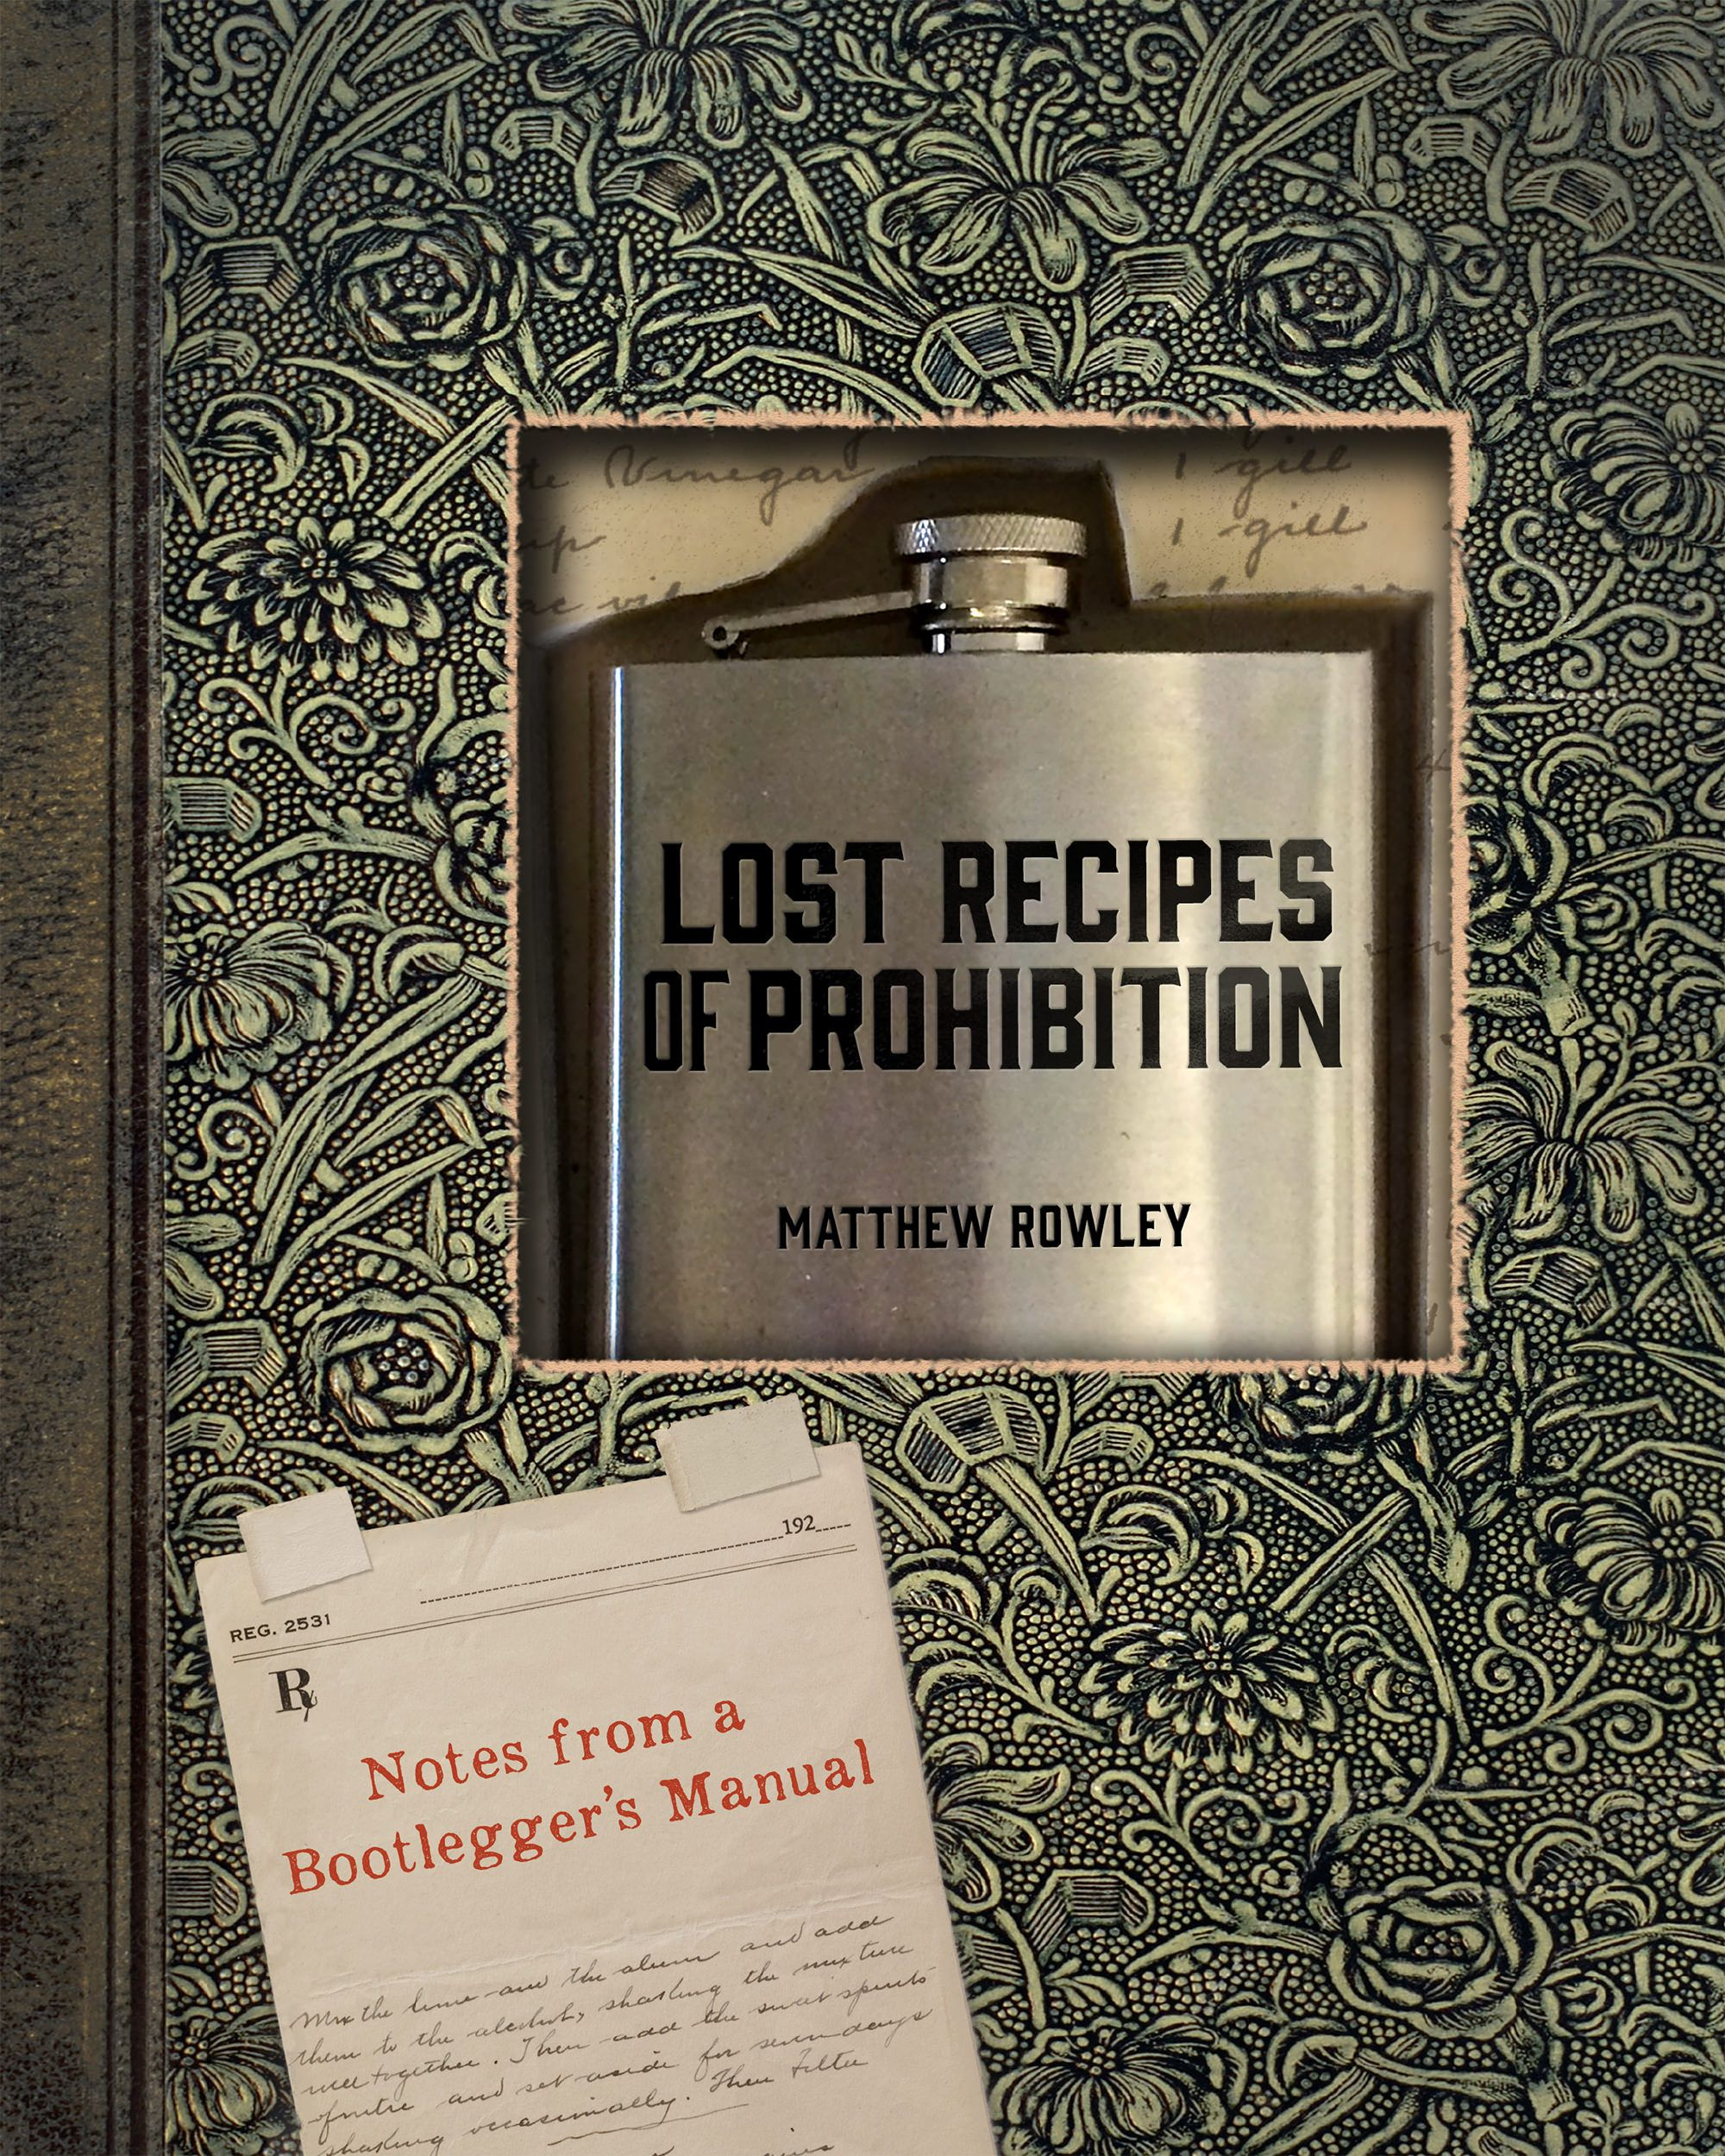 Prohibition Kitchen creative ways bootleggers smuggle alcohol- i was thinking of